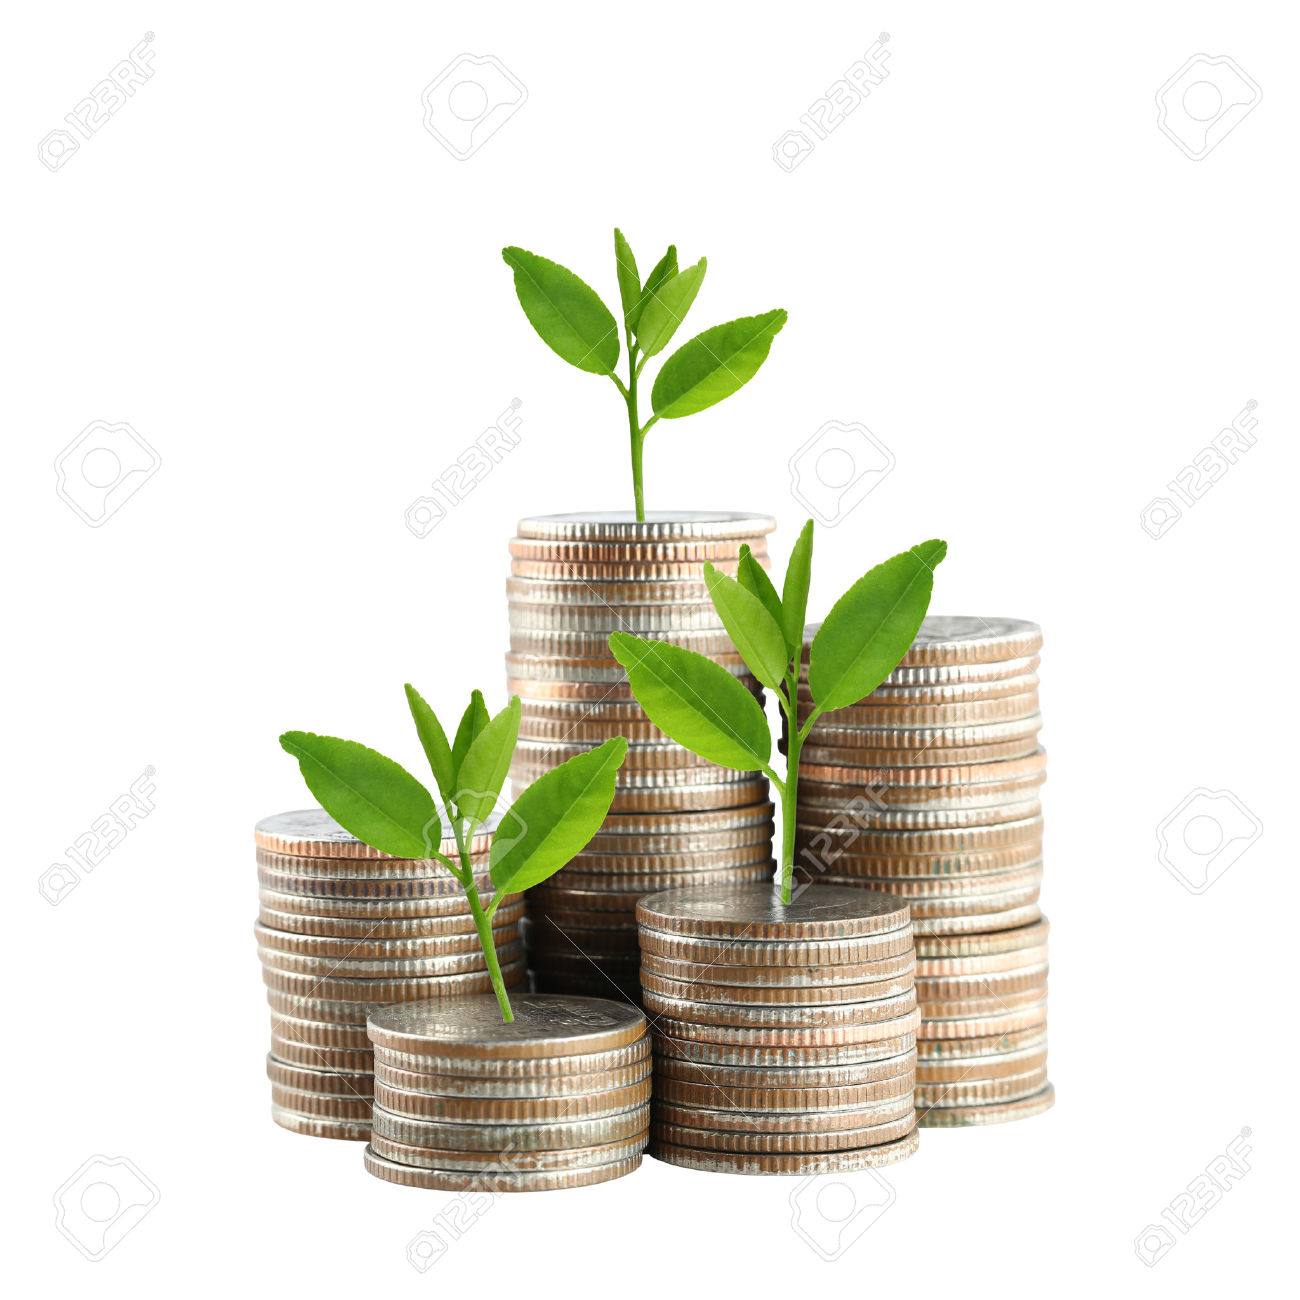 42077120-silver-Thailand-coins-stack-isolated-and-green-treetop-demonstrate-the-concept-of-growth-in-economic-Stock-Photo